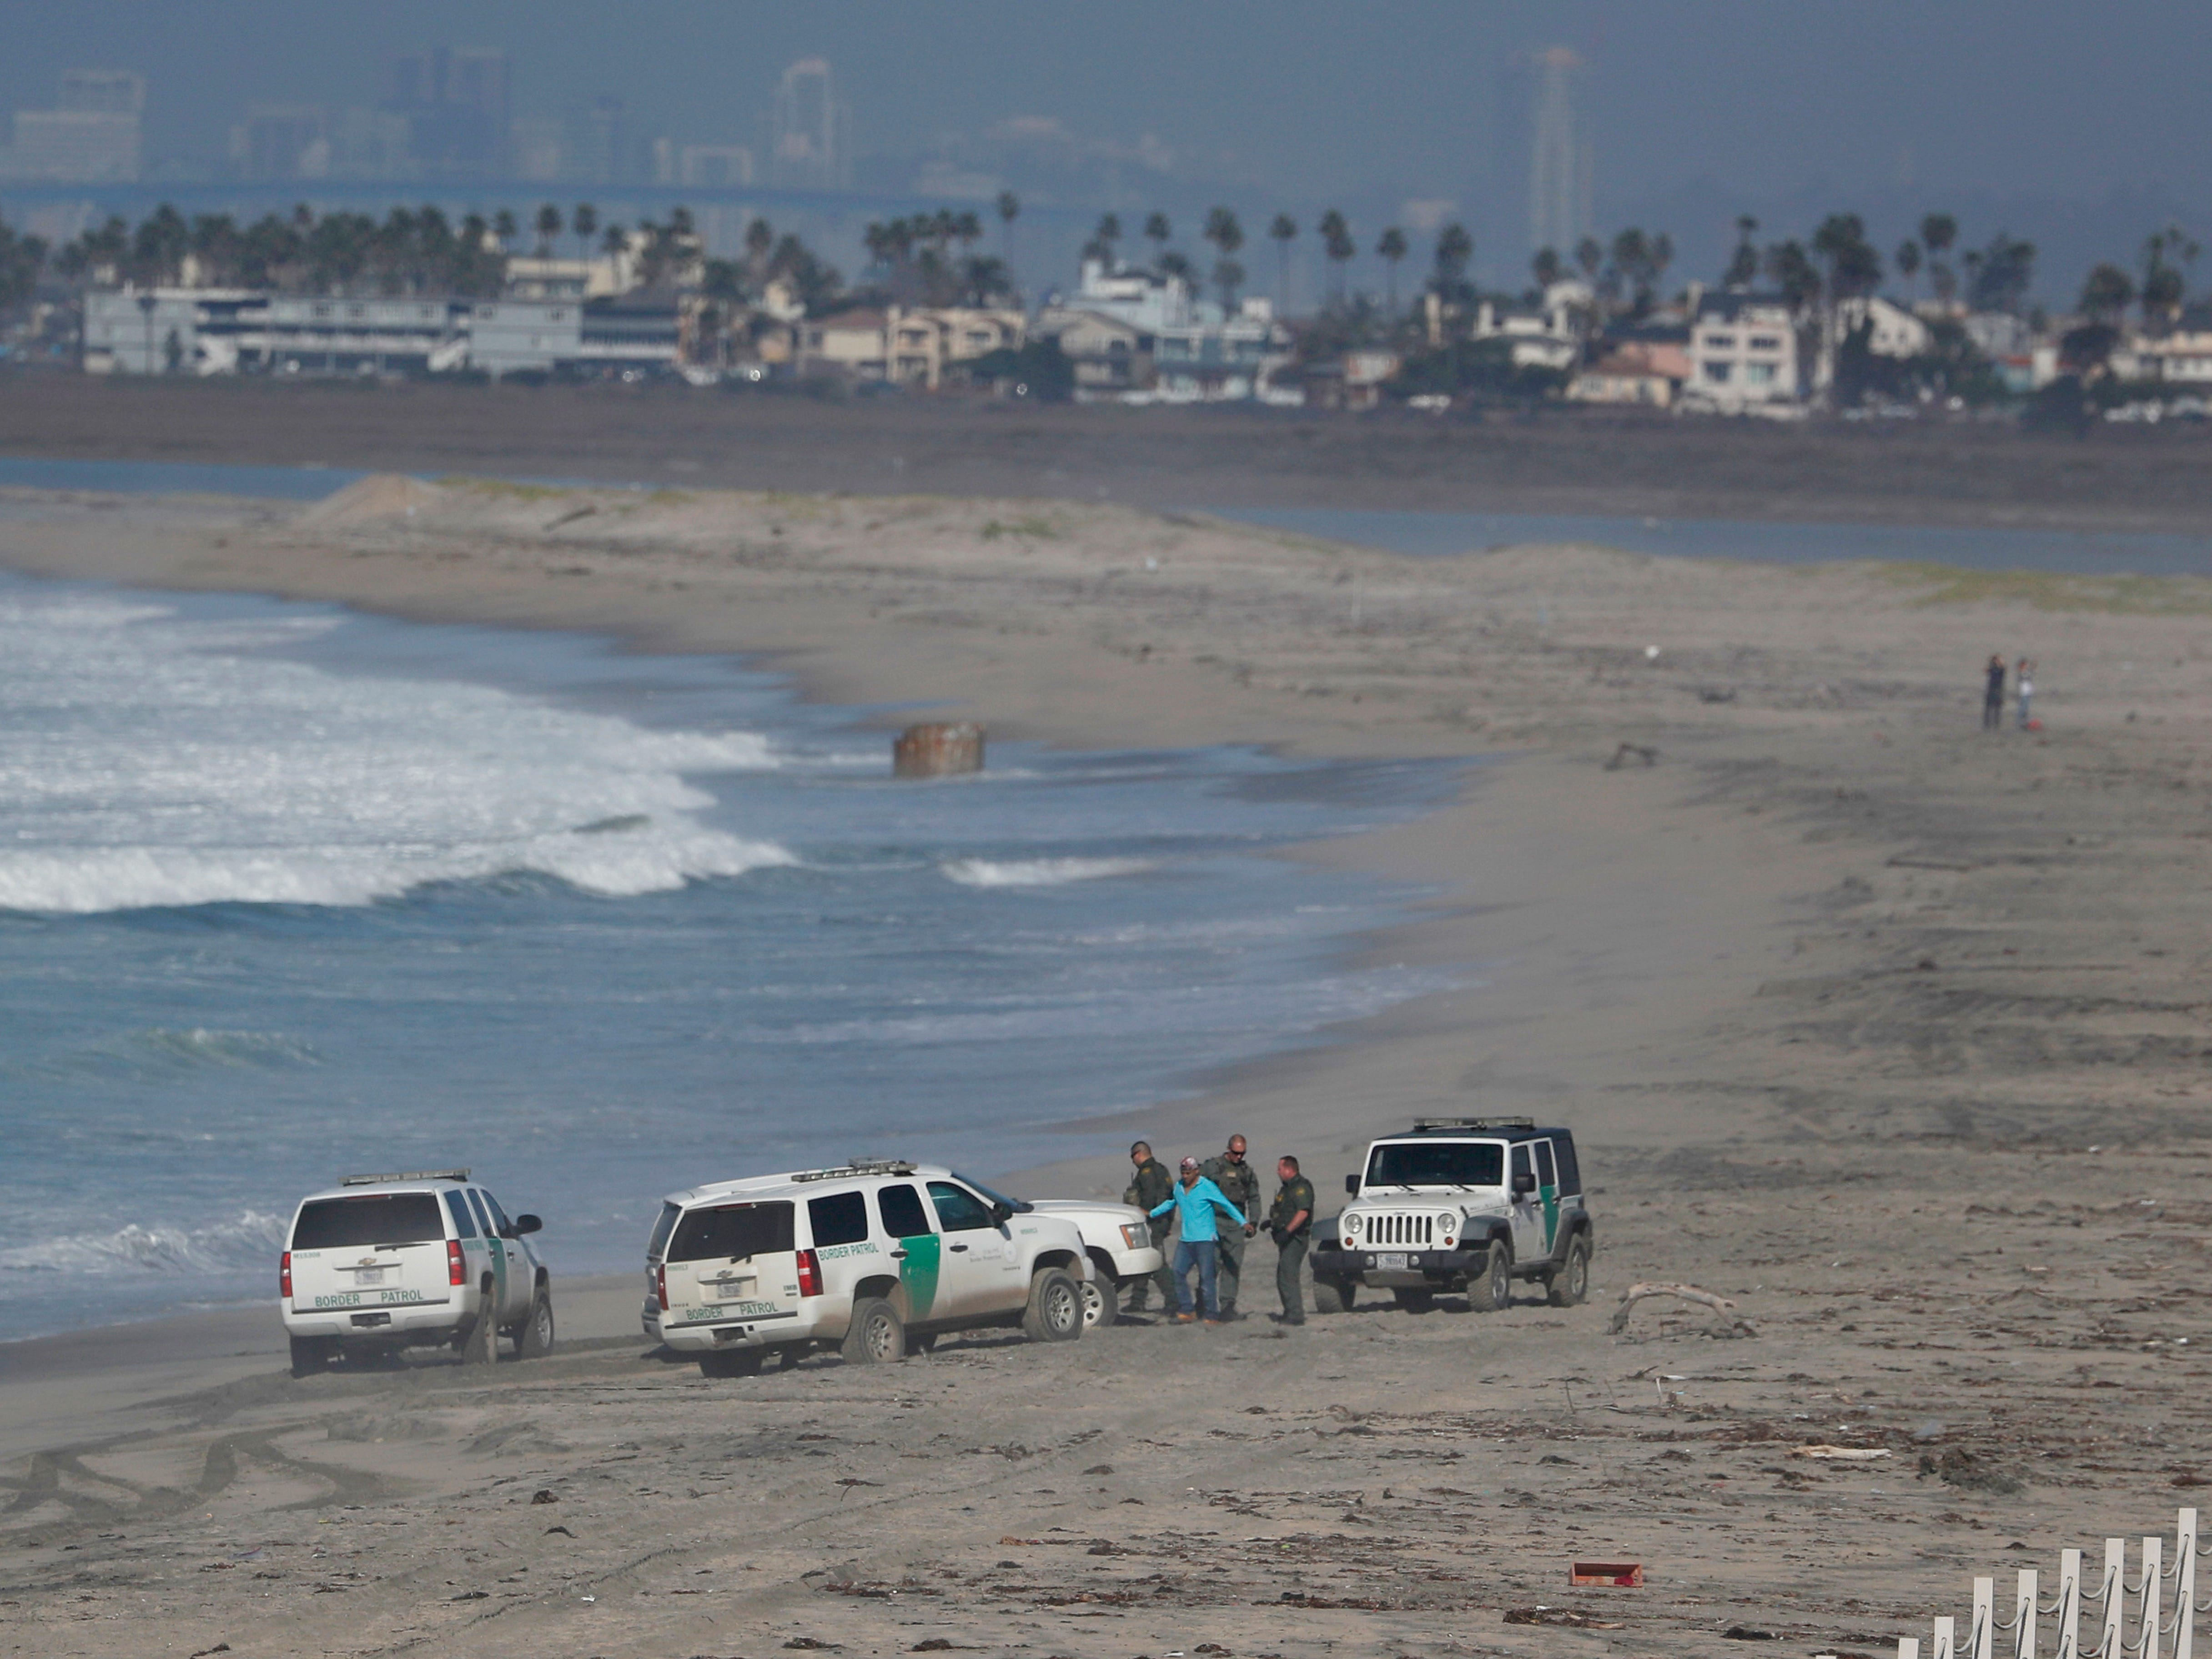 A migrant is taken into custody by U.S. Border Patrol agents after crossing the U.S. border wall into San Diego seen from Tijuana, Mexico on Dec. 11, 2018.